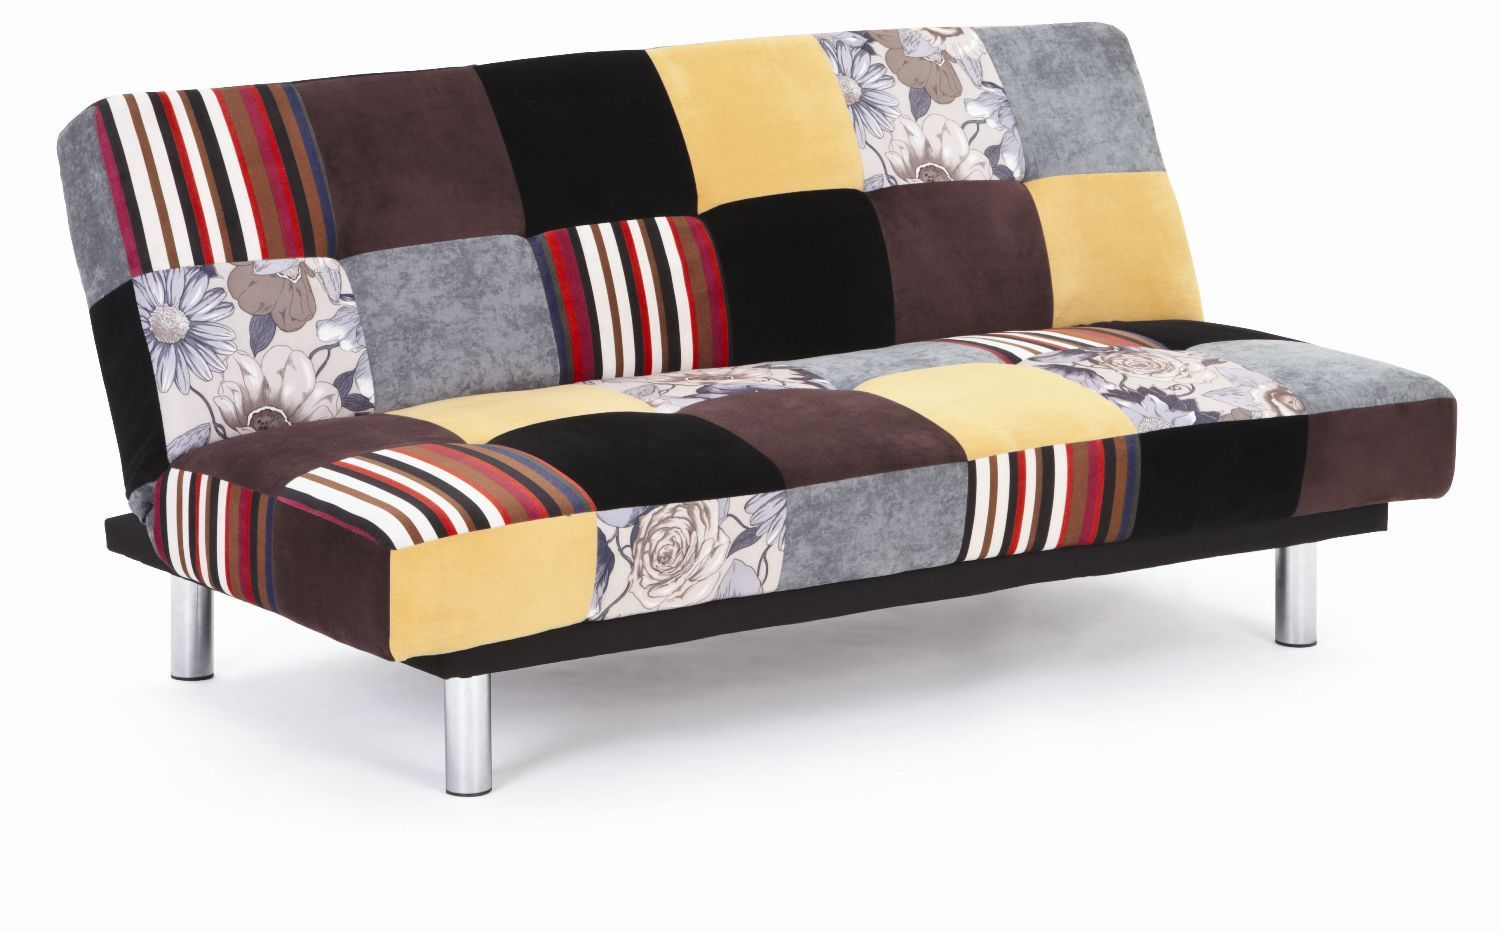 ottoman sofa bed harvey norman 3ft wide york this